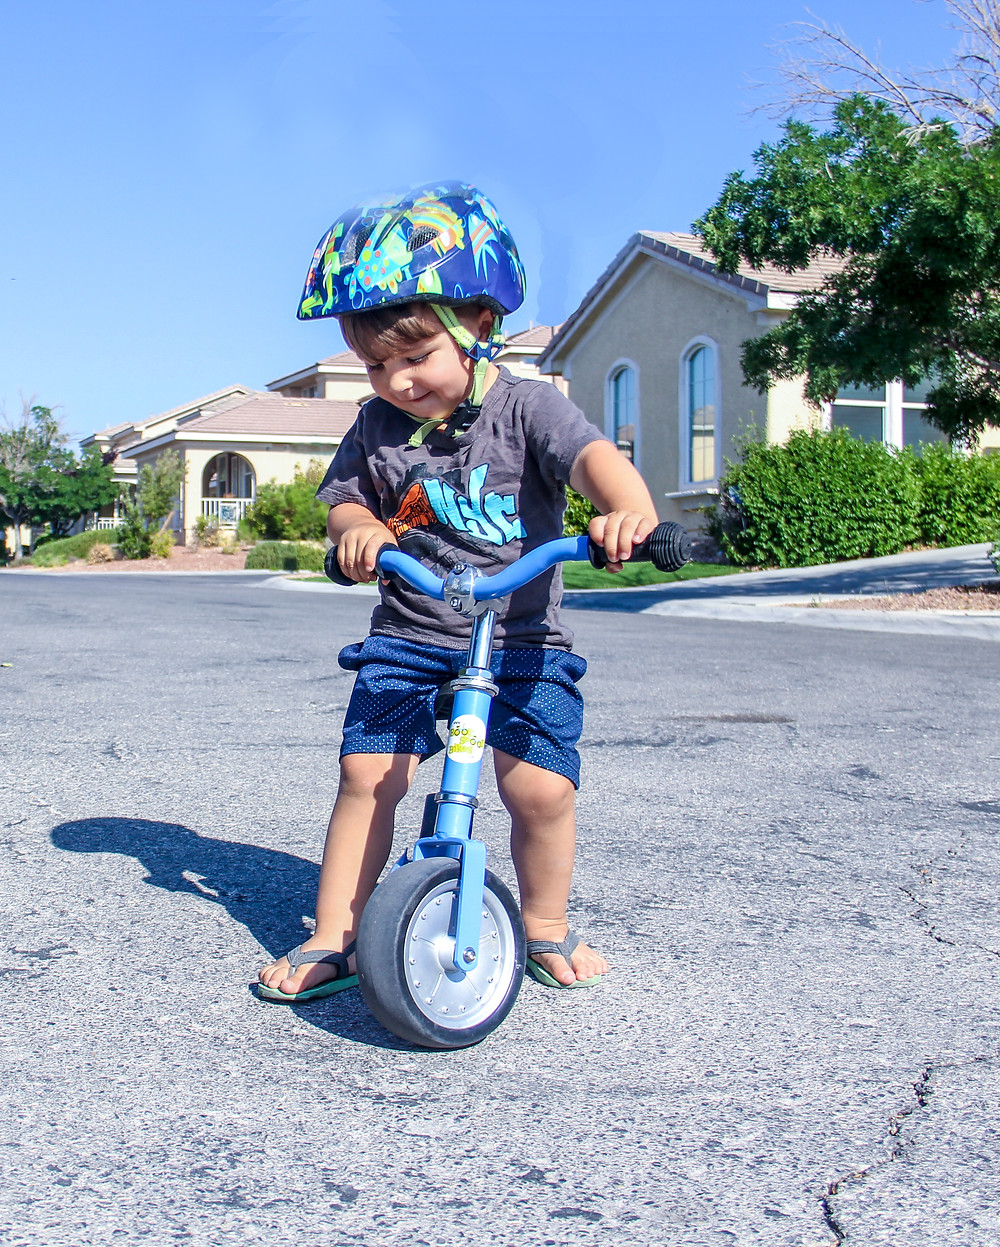 Born a Backpacker is giving away this awesome balance bike!